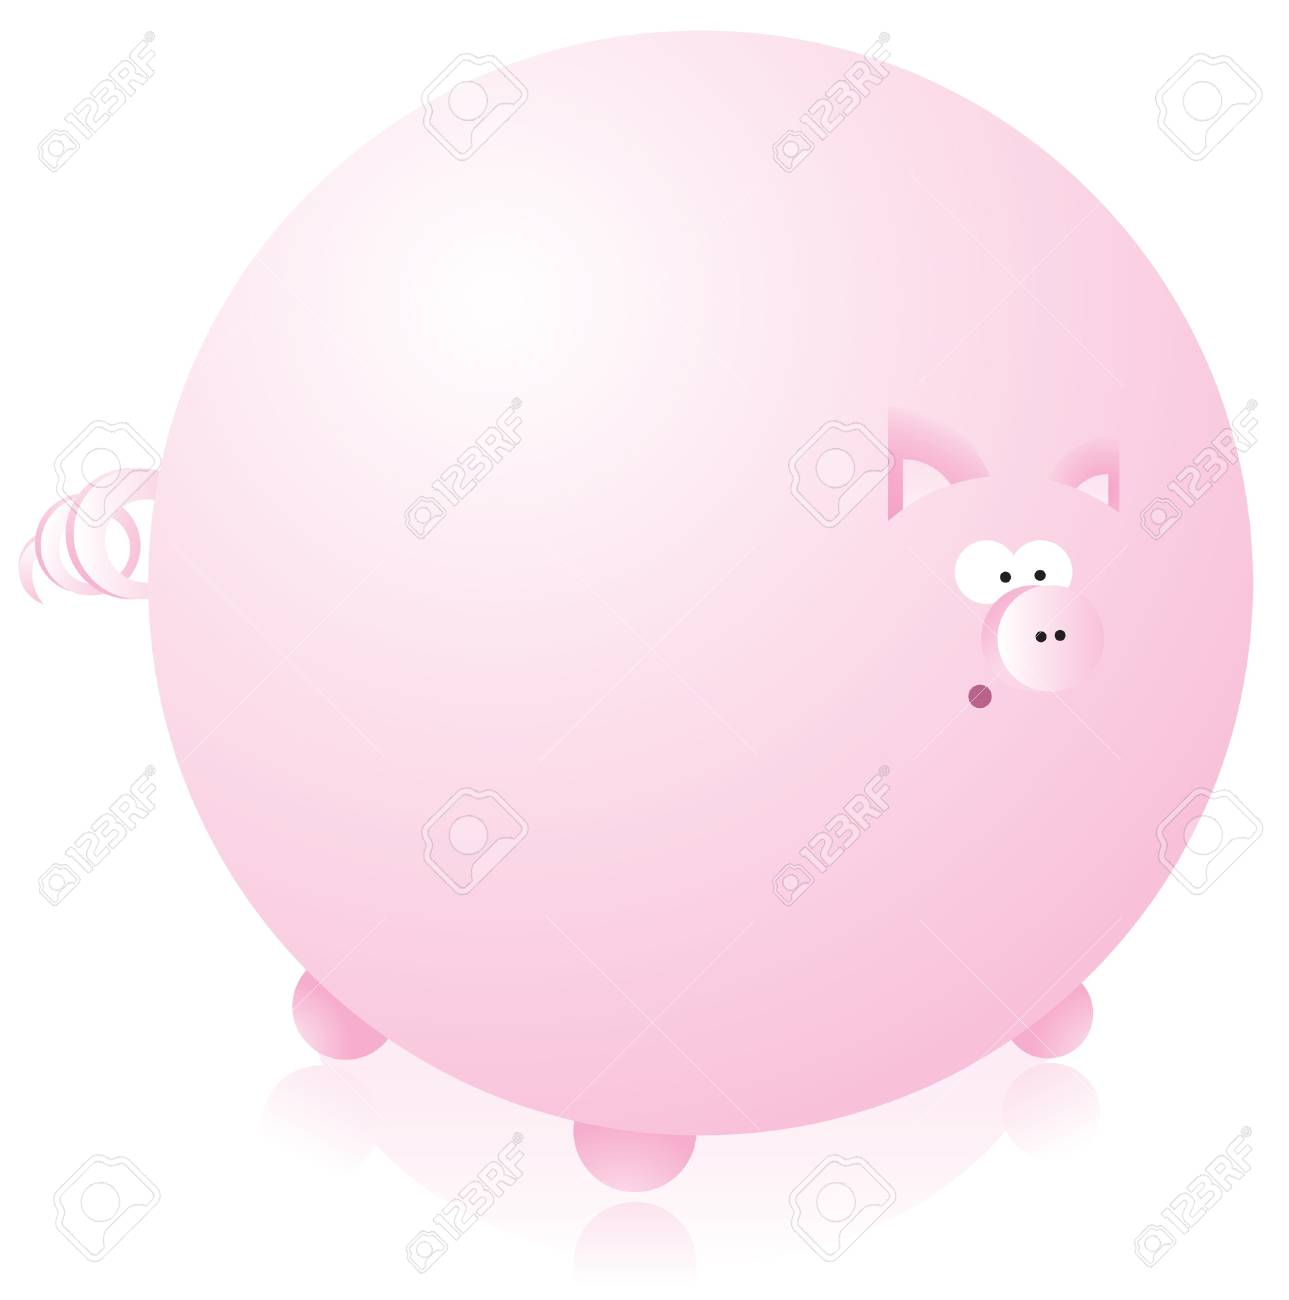 Huge round pink pig Stock Vector - 19177387